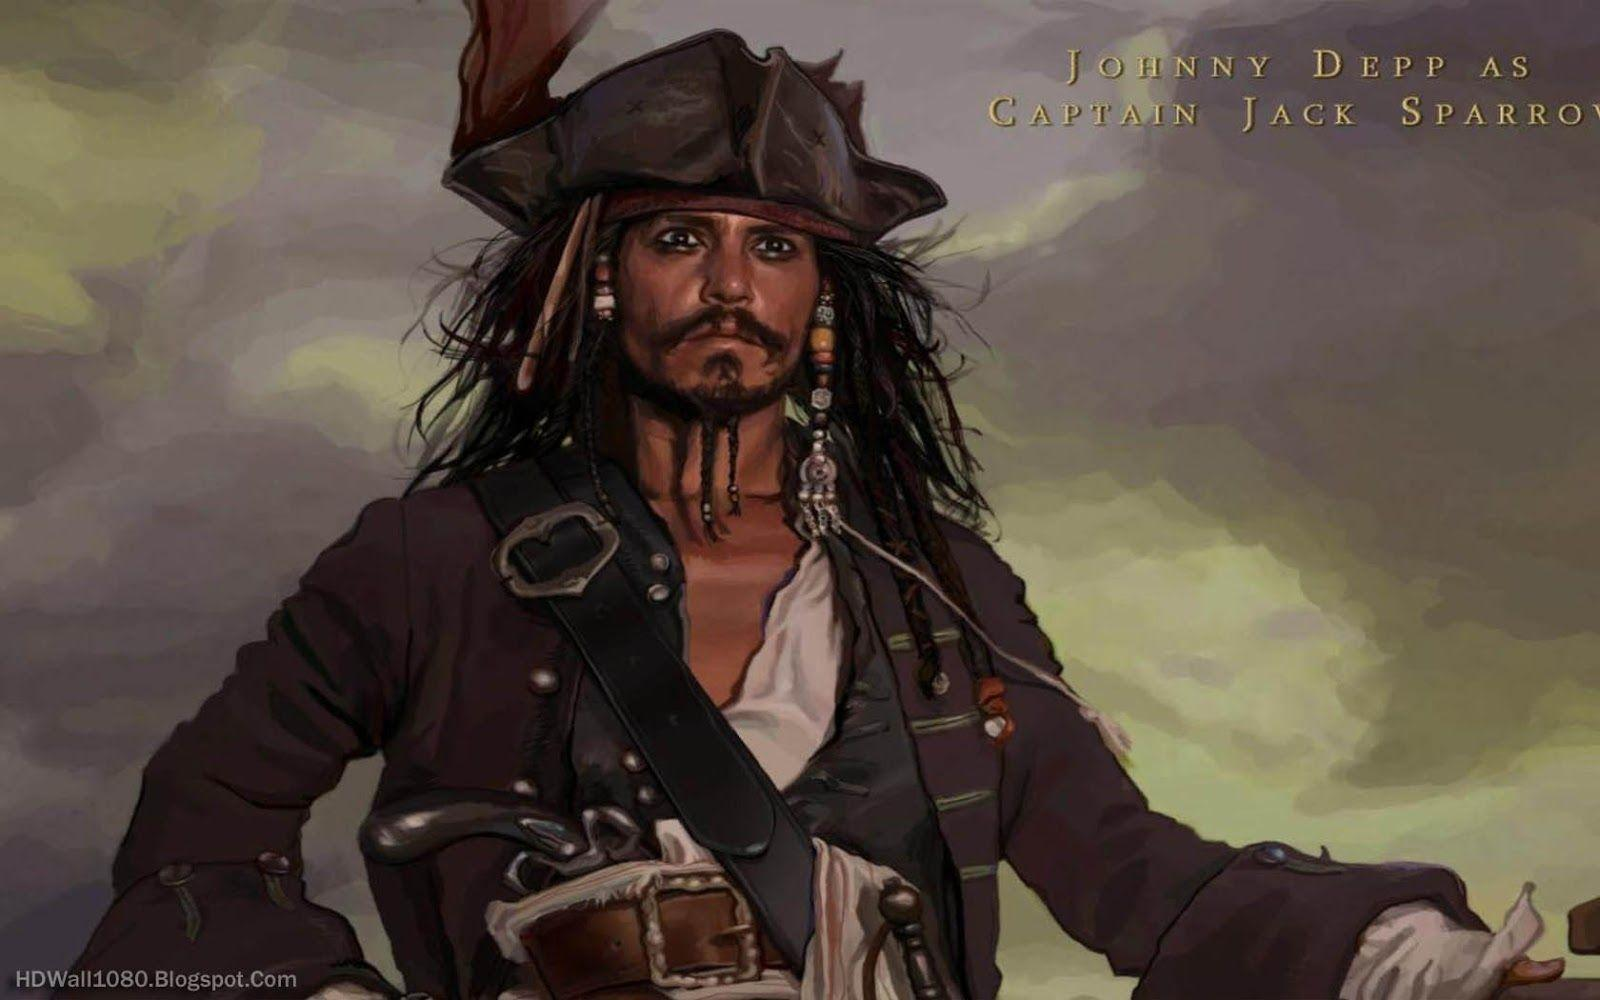 Johnny Depp As Captain Jack Sparrow Photos Image And Wallpapers ...